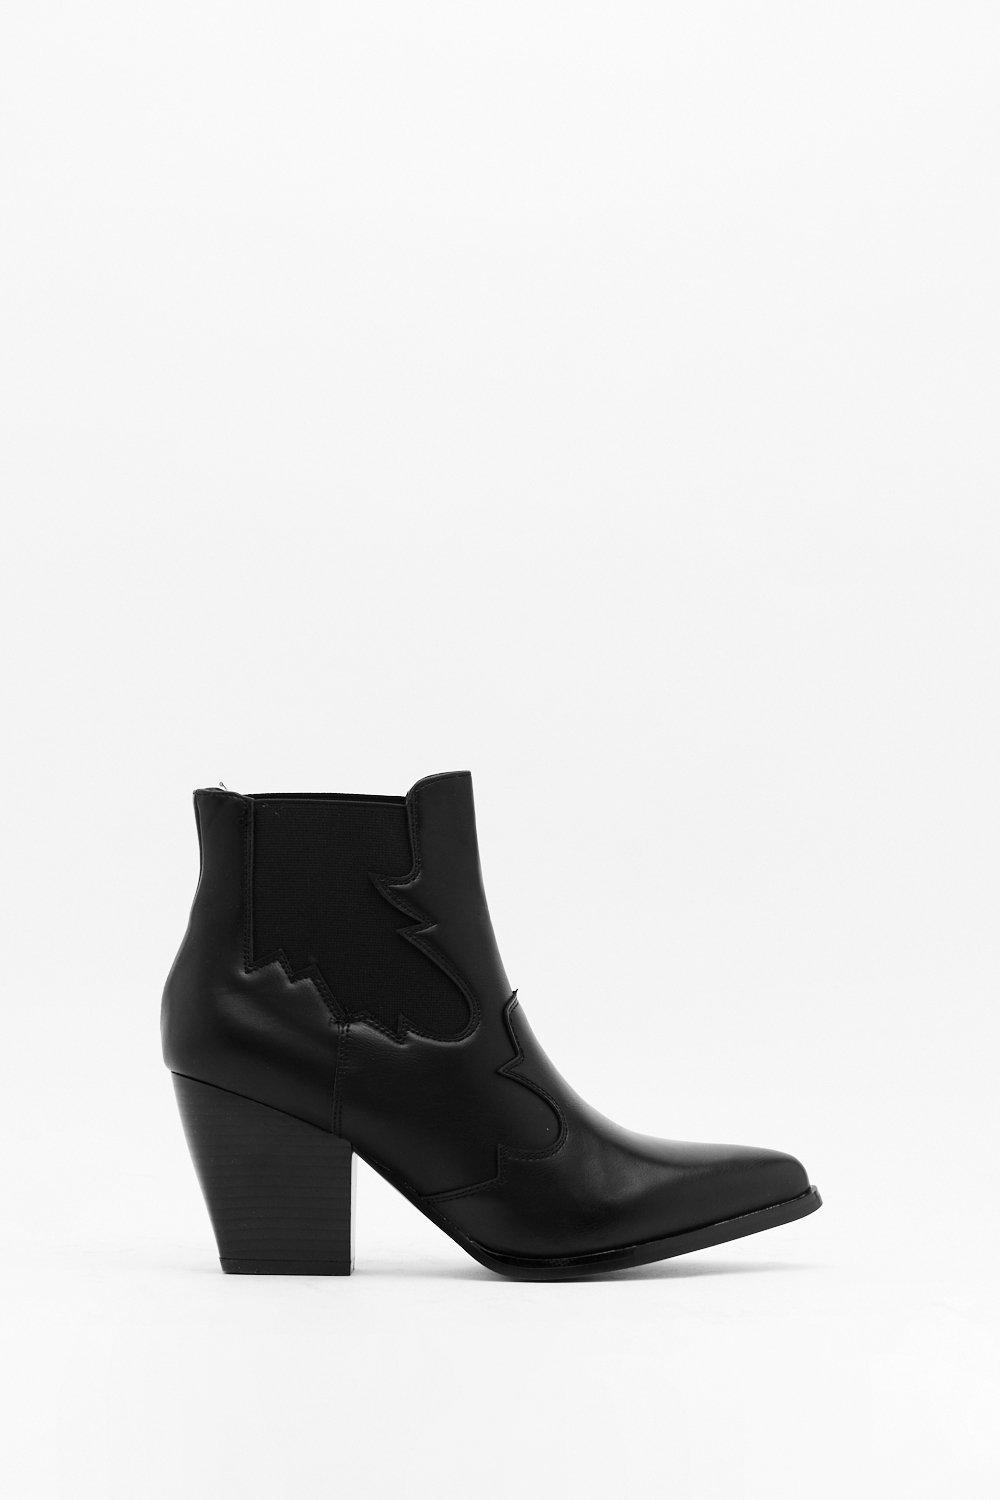 Image of Tipping Gusset Chelsea Boot